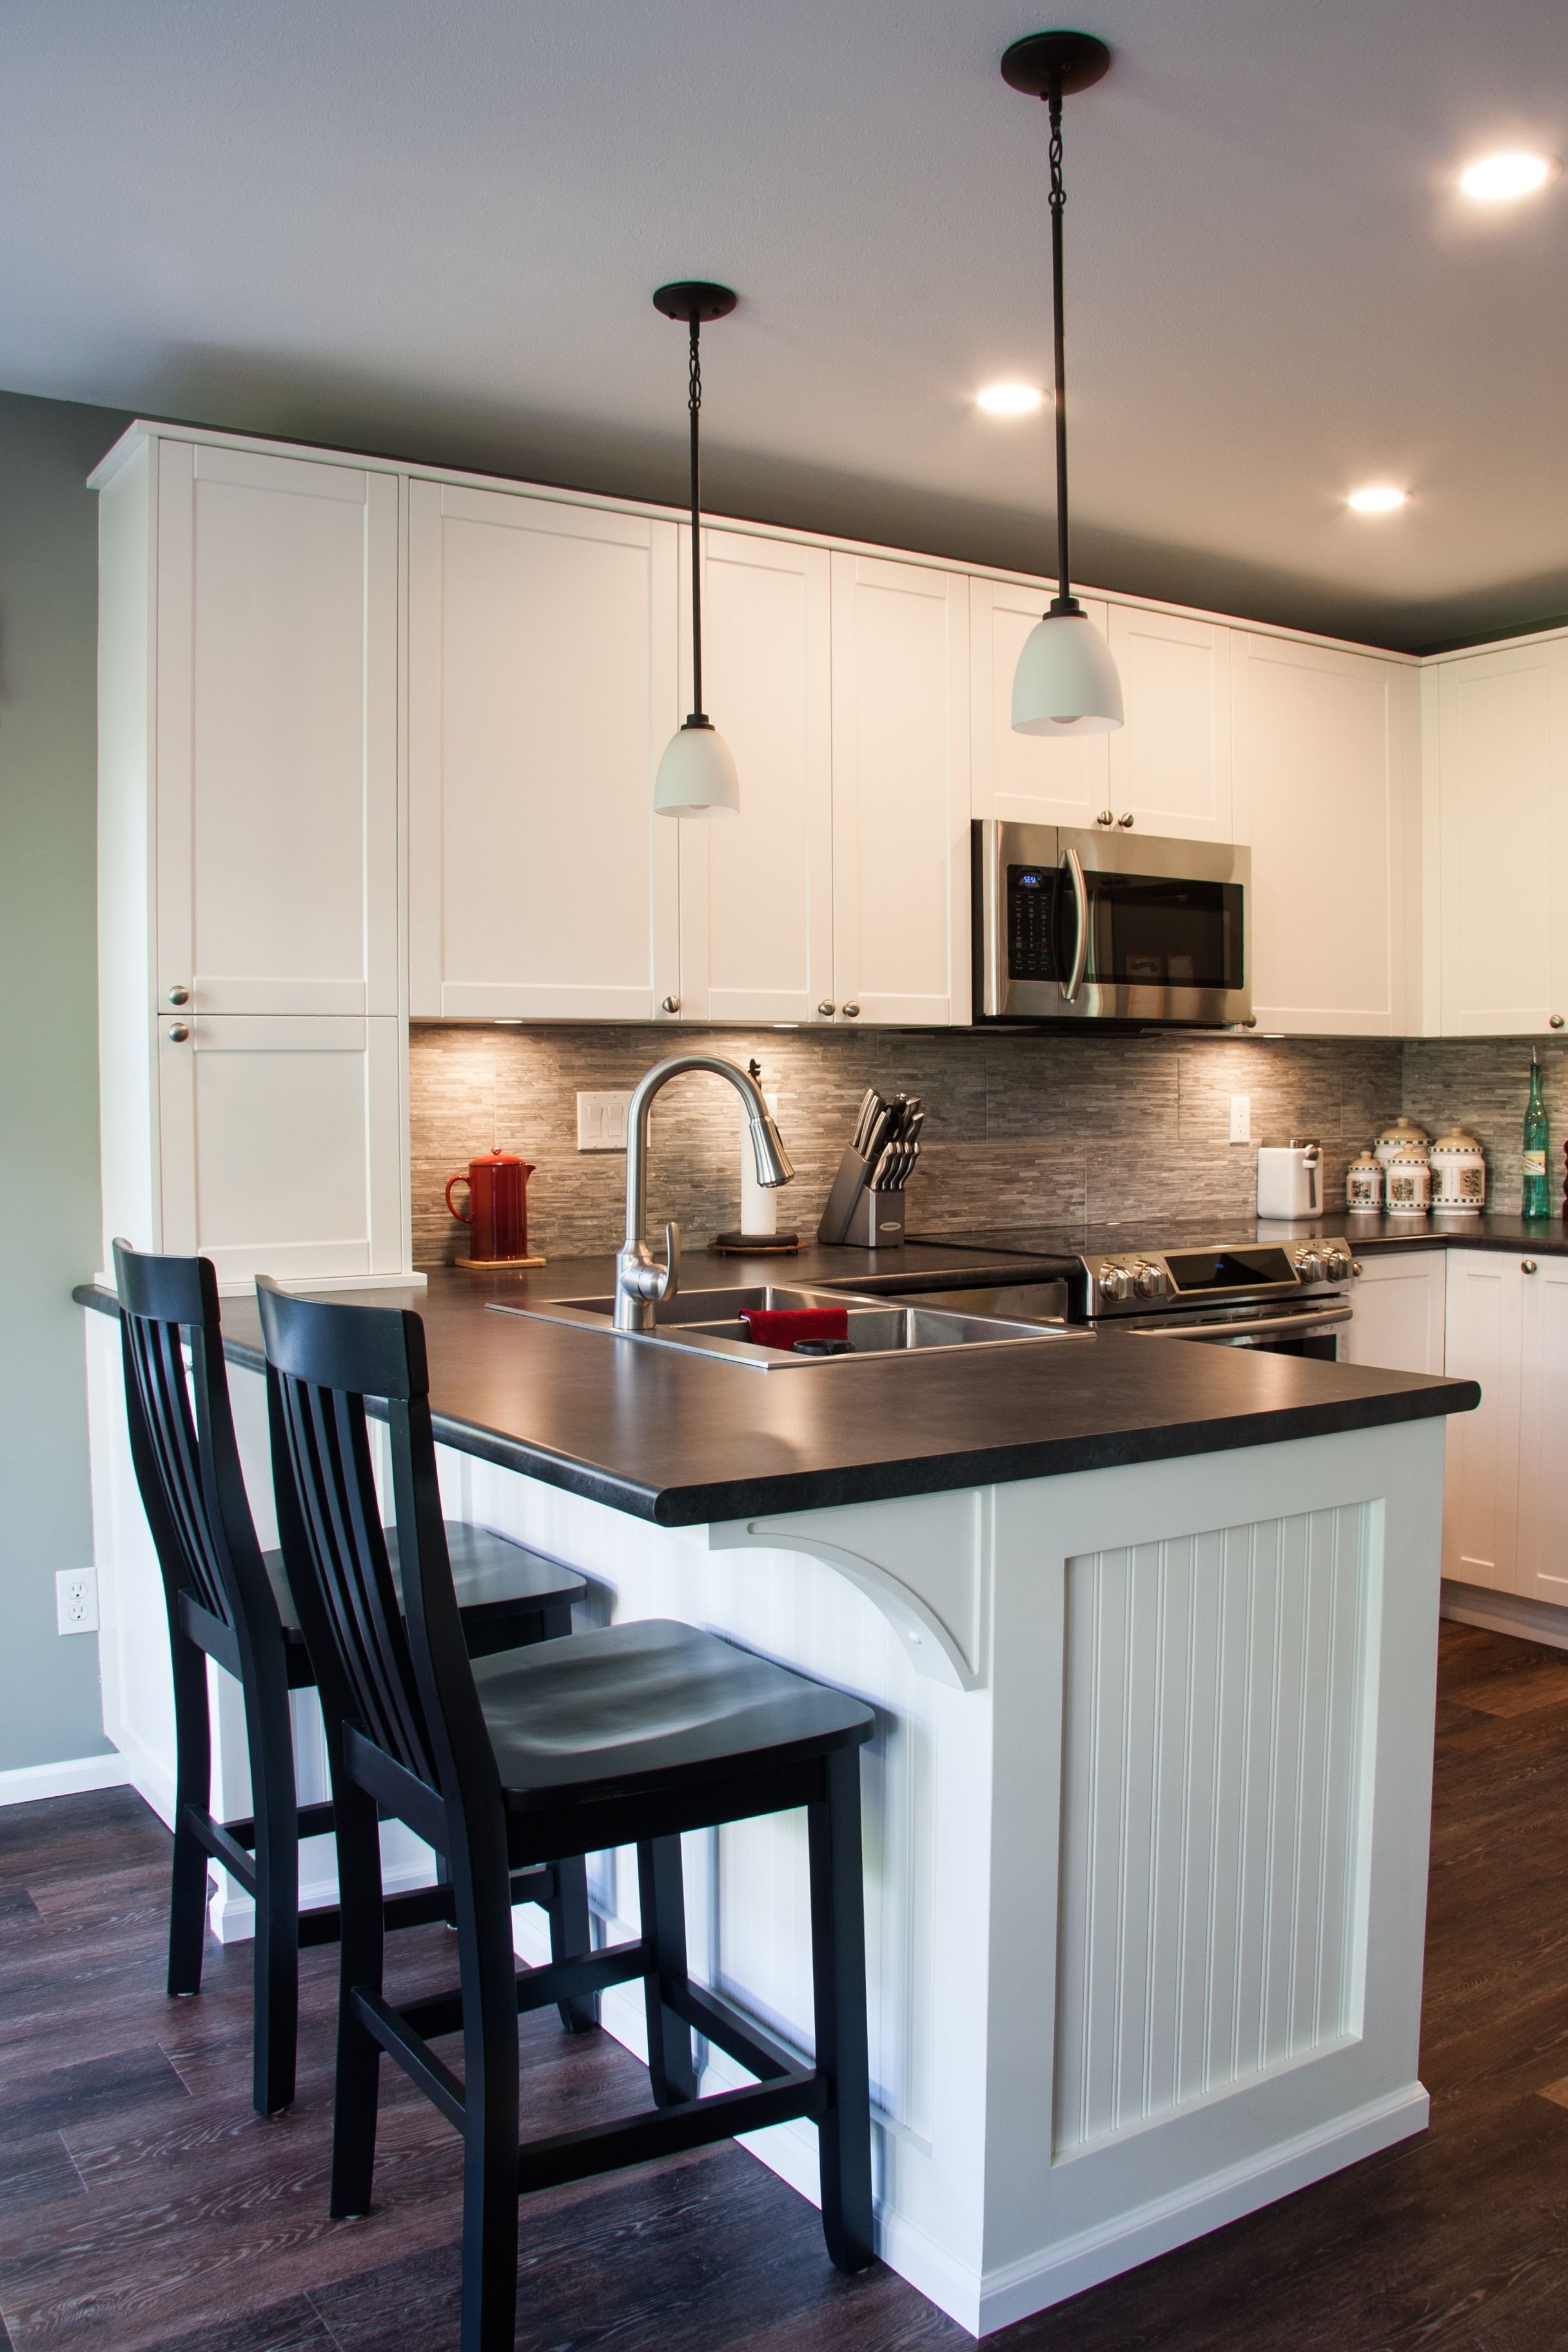 Fashionable New Breakfast Bar And Stools (View 17 of 25)